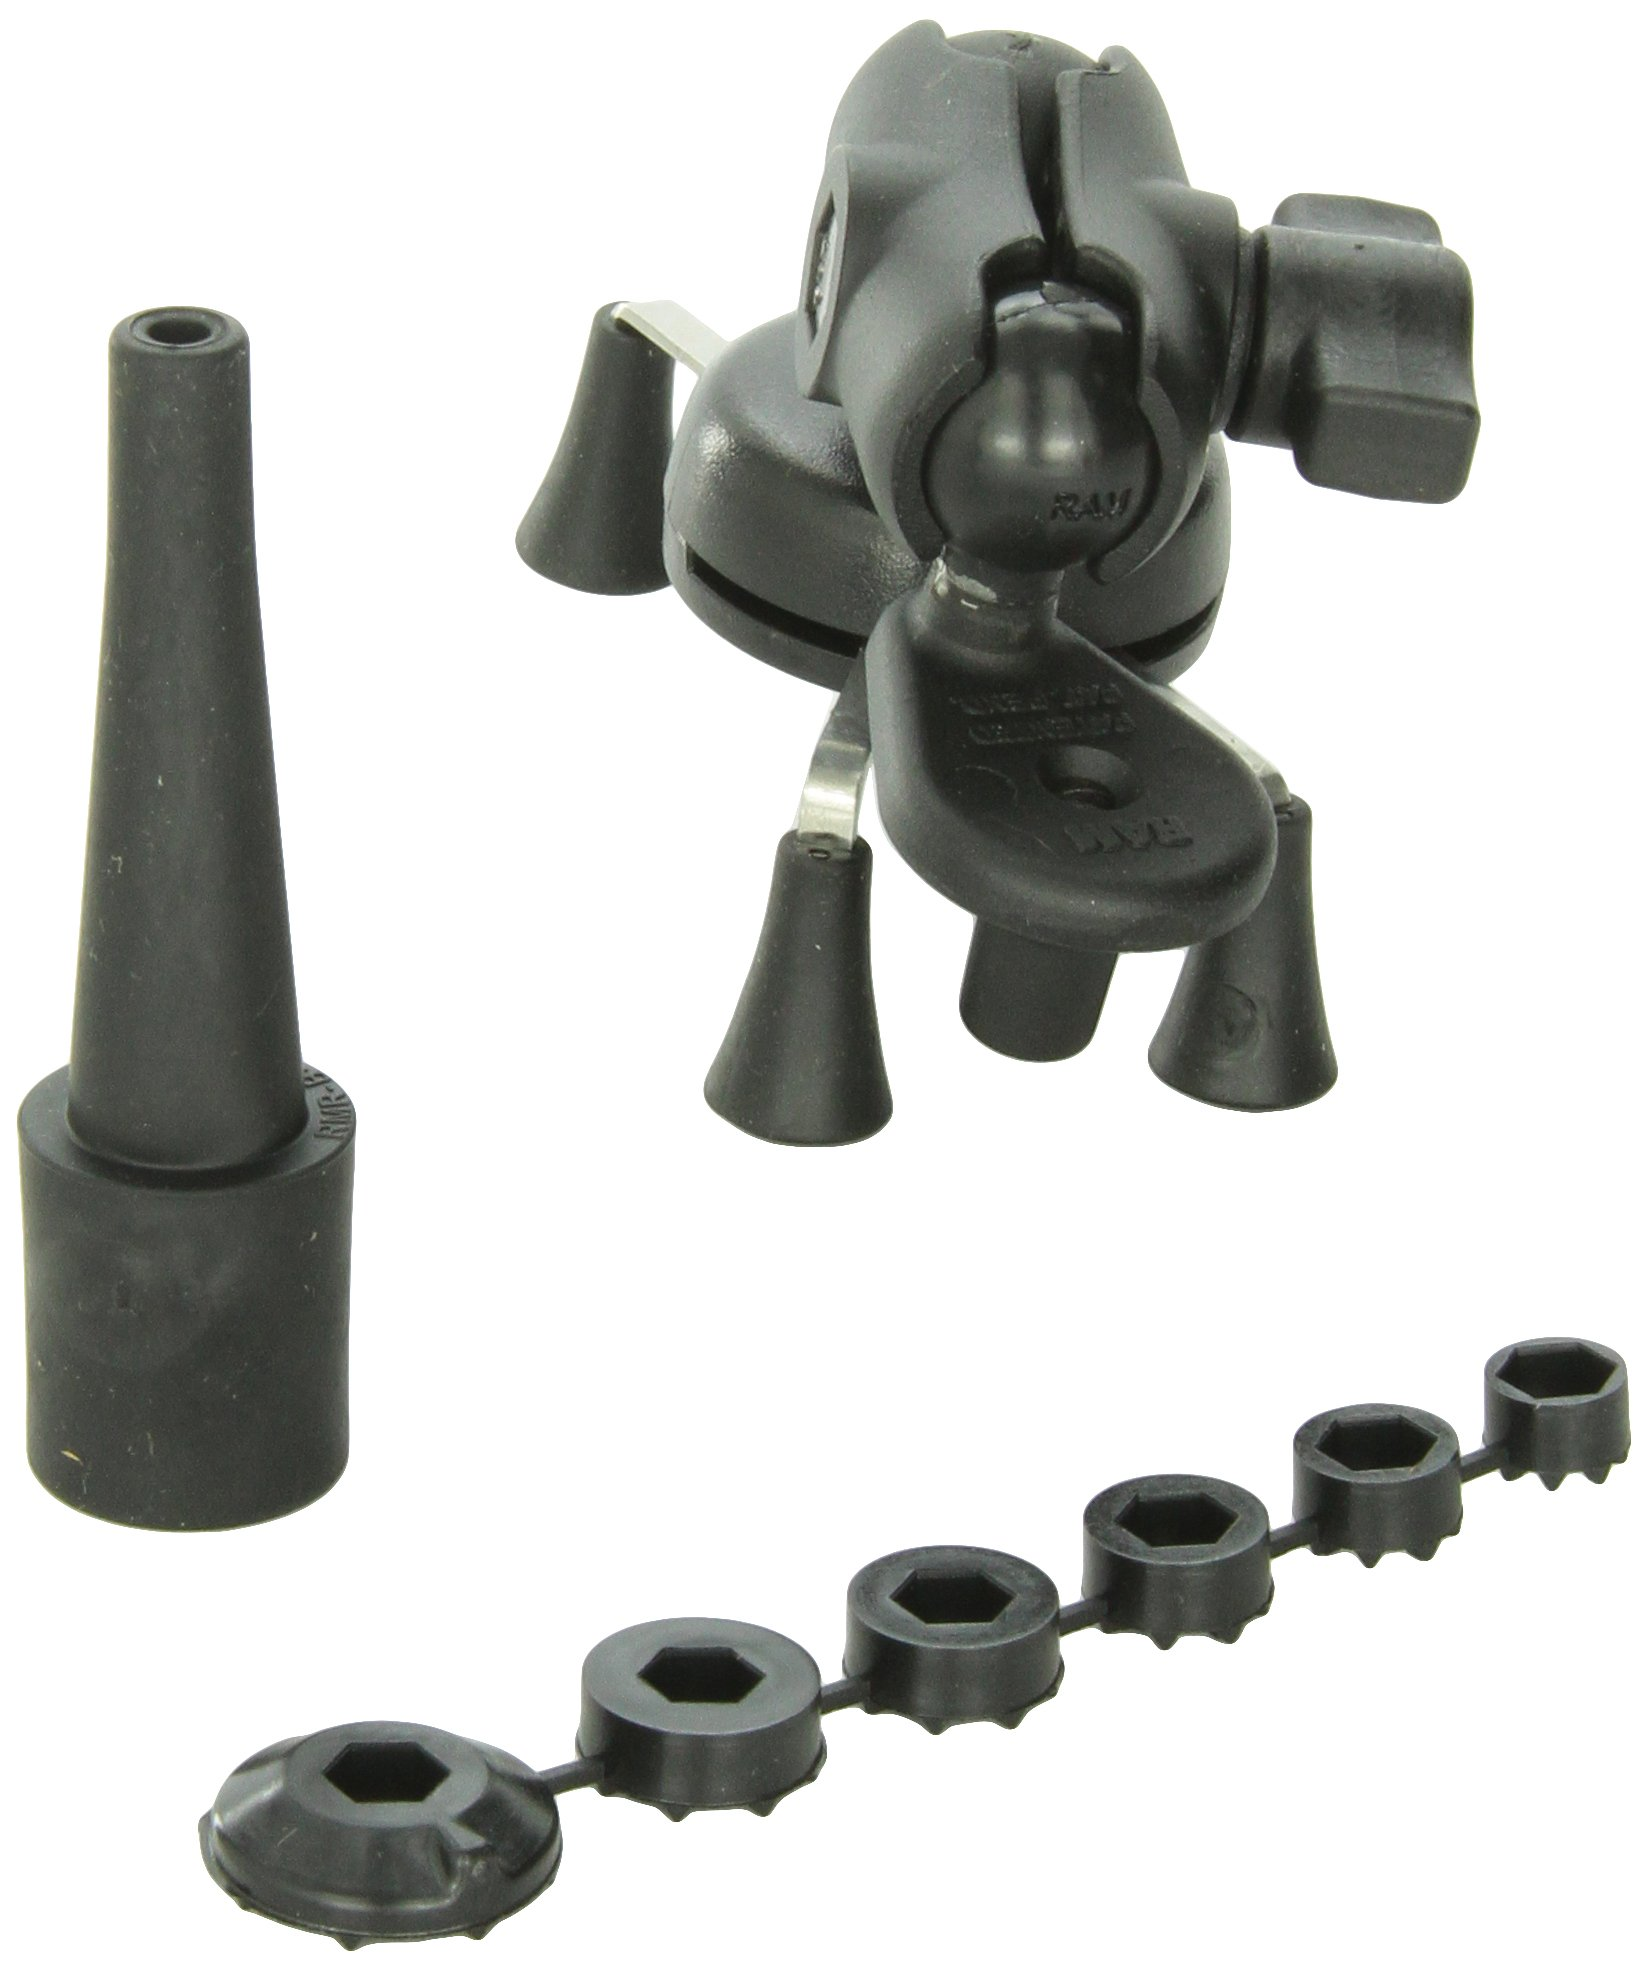 RAM MOUNTS (RAM-B-176-A-UN7U Fork Stem Mount with Short Double Socket Arm and Universal X-Grip Cell/Iphone Holder